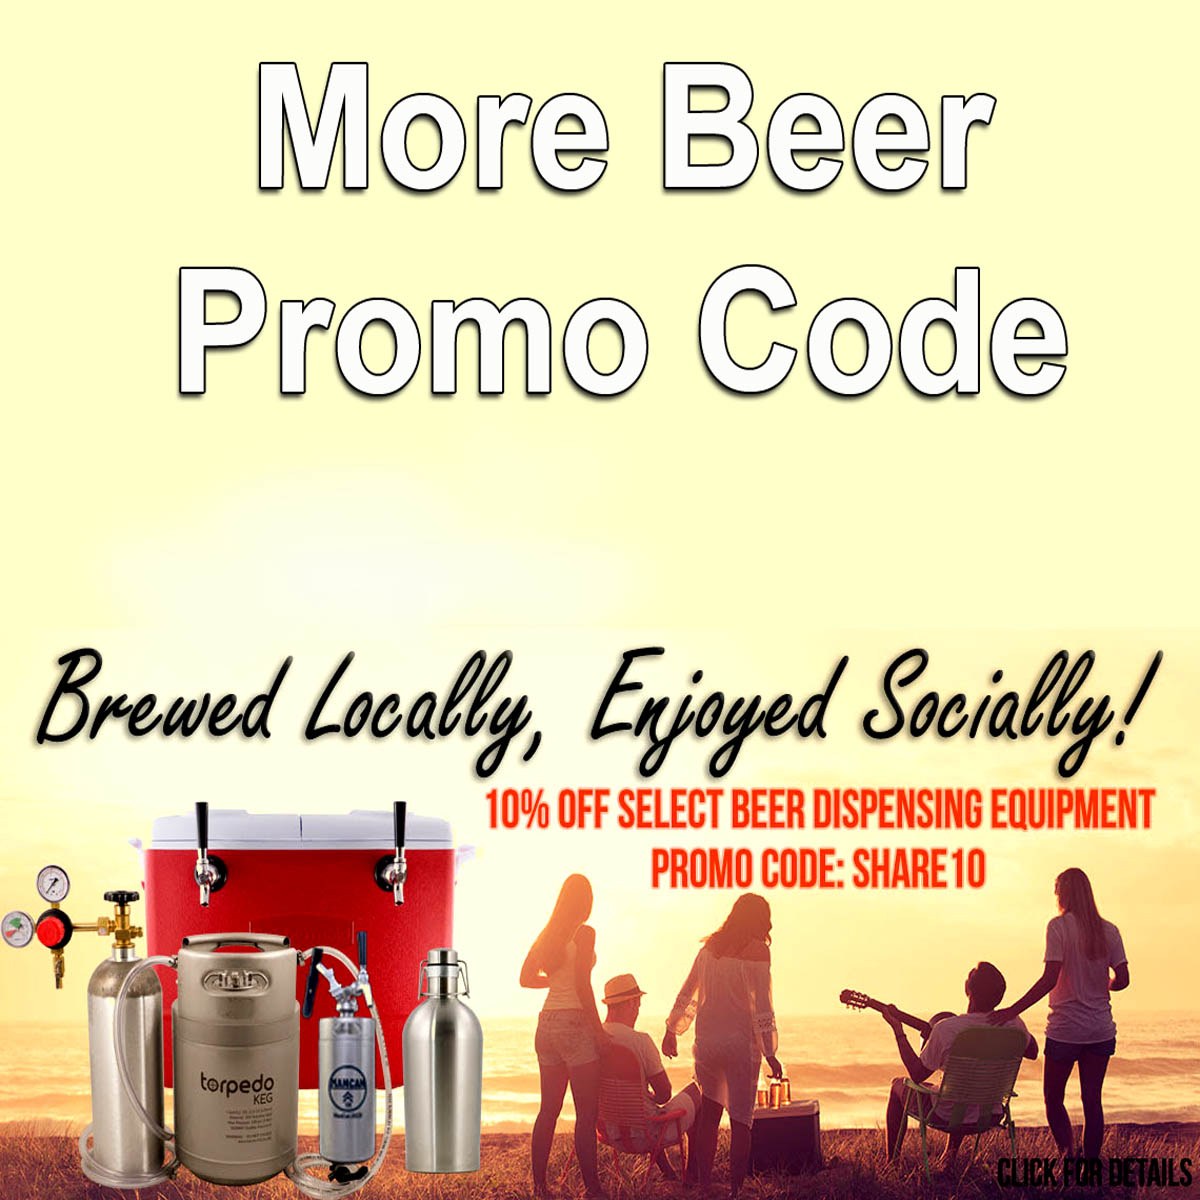 Home Brewer Promo Code for Save 10% On Over 50 Items at More Beer Coupon Code